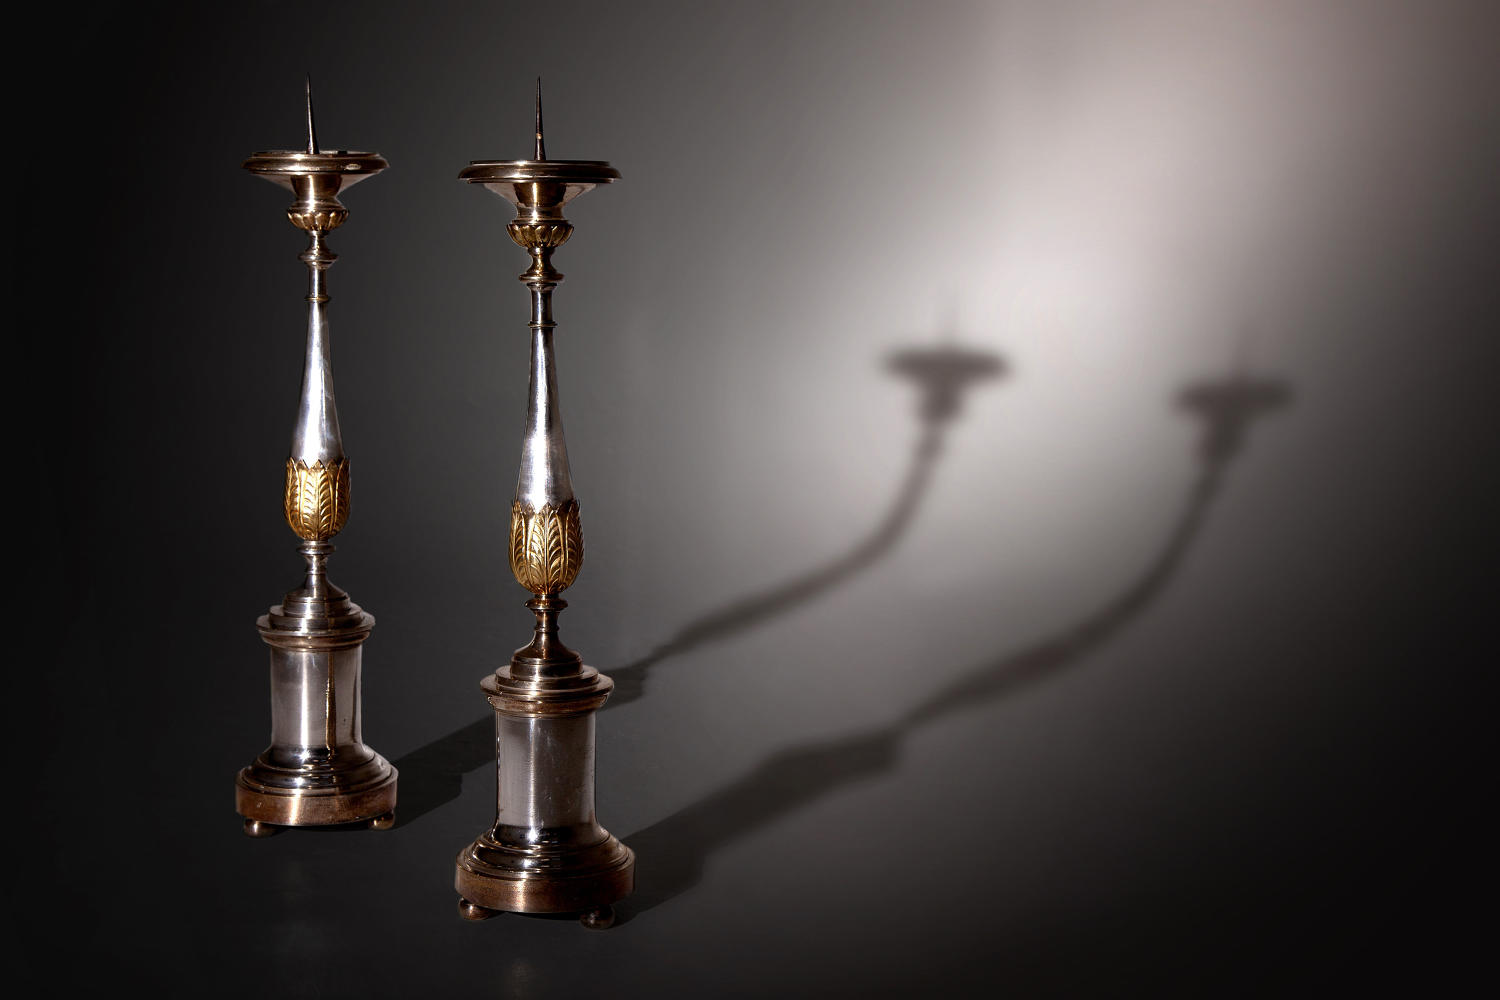 A tall pair of silvered and gilded pricket candlesticks